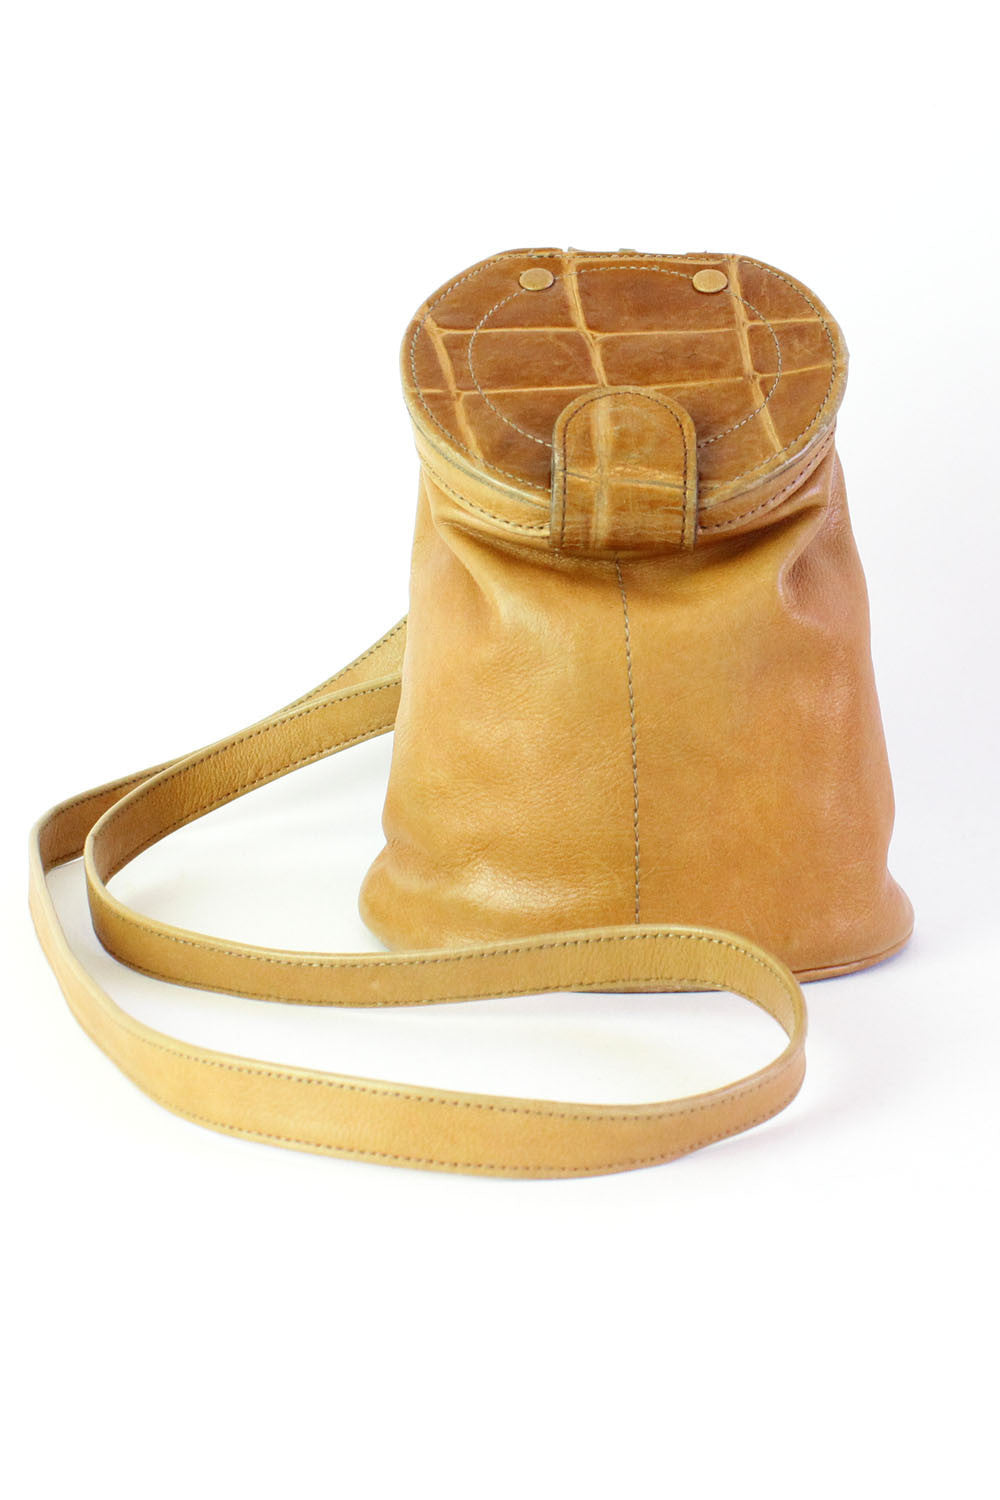 Honey Leather Bucket Bag